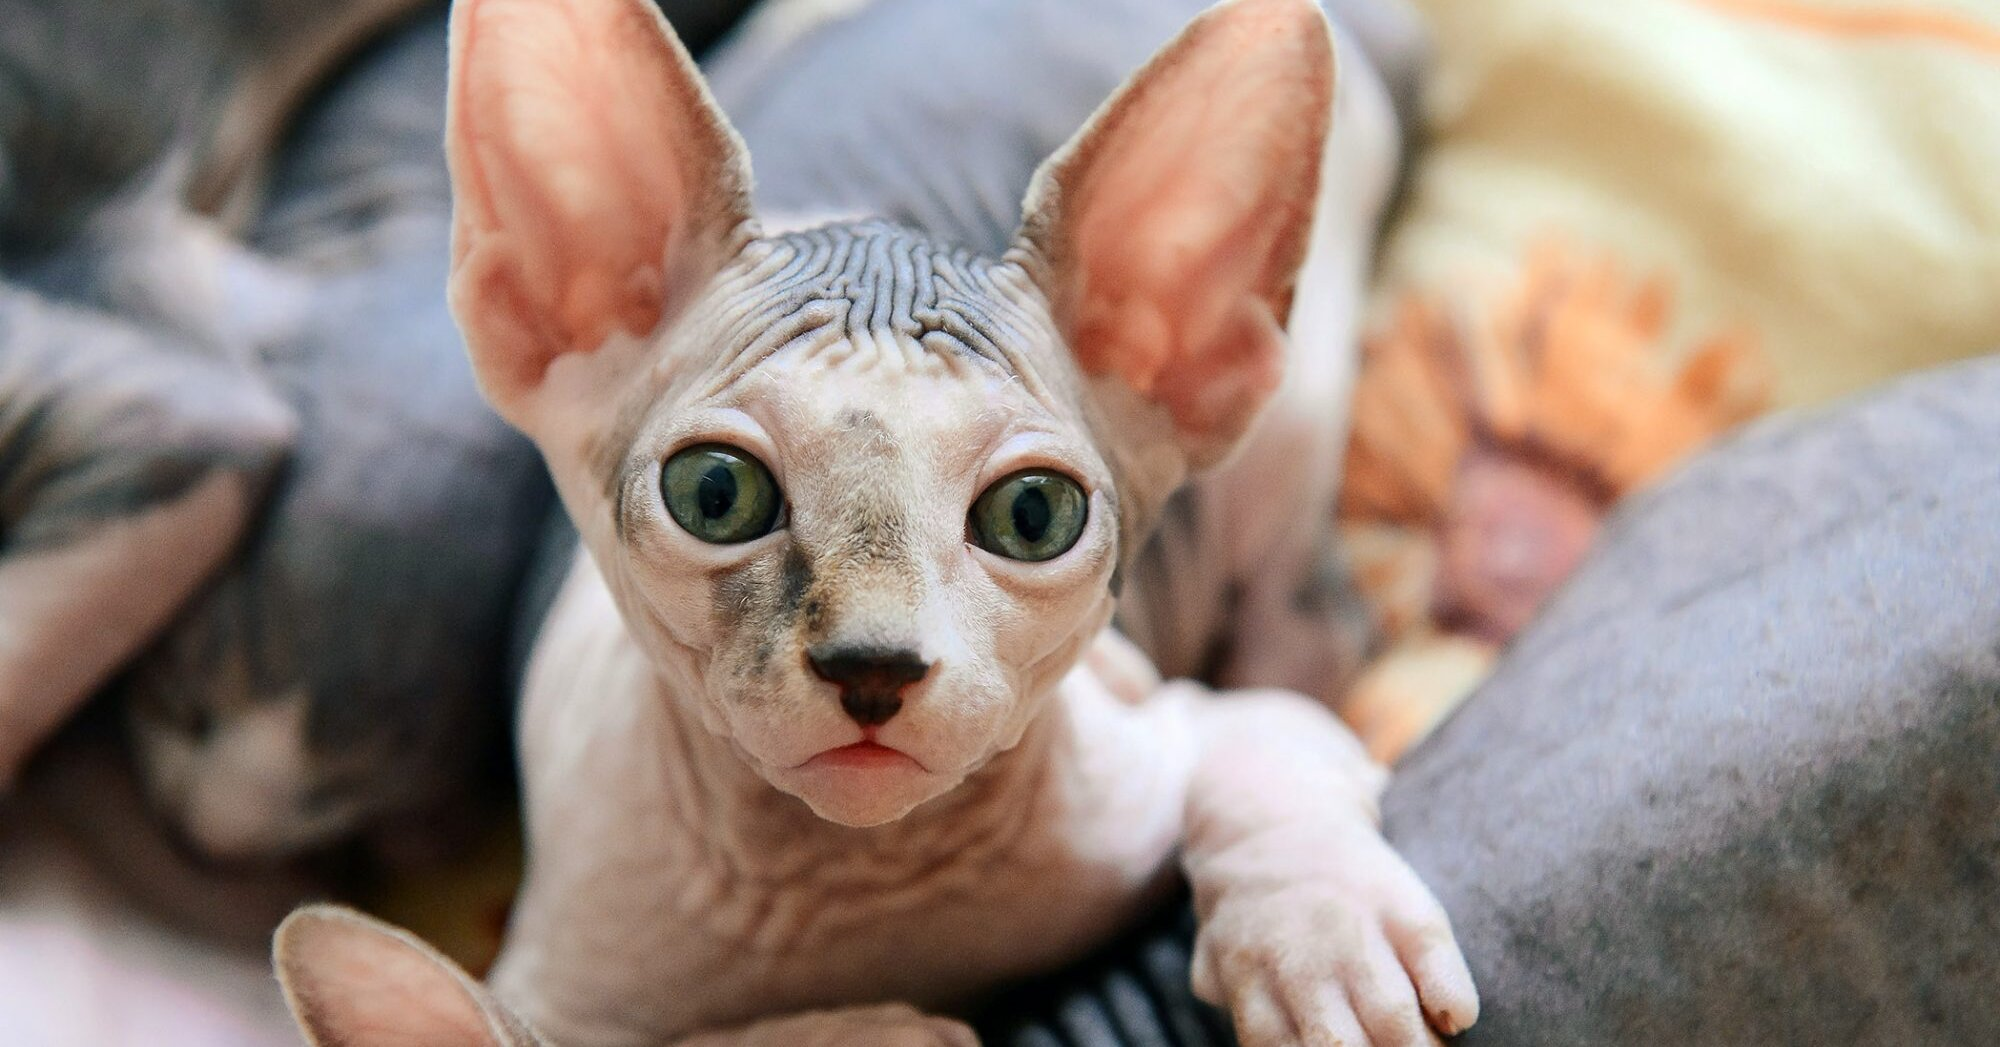 What You Should Know About Hairless Cat Breeds